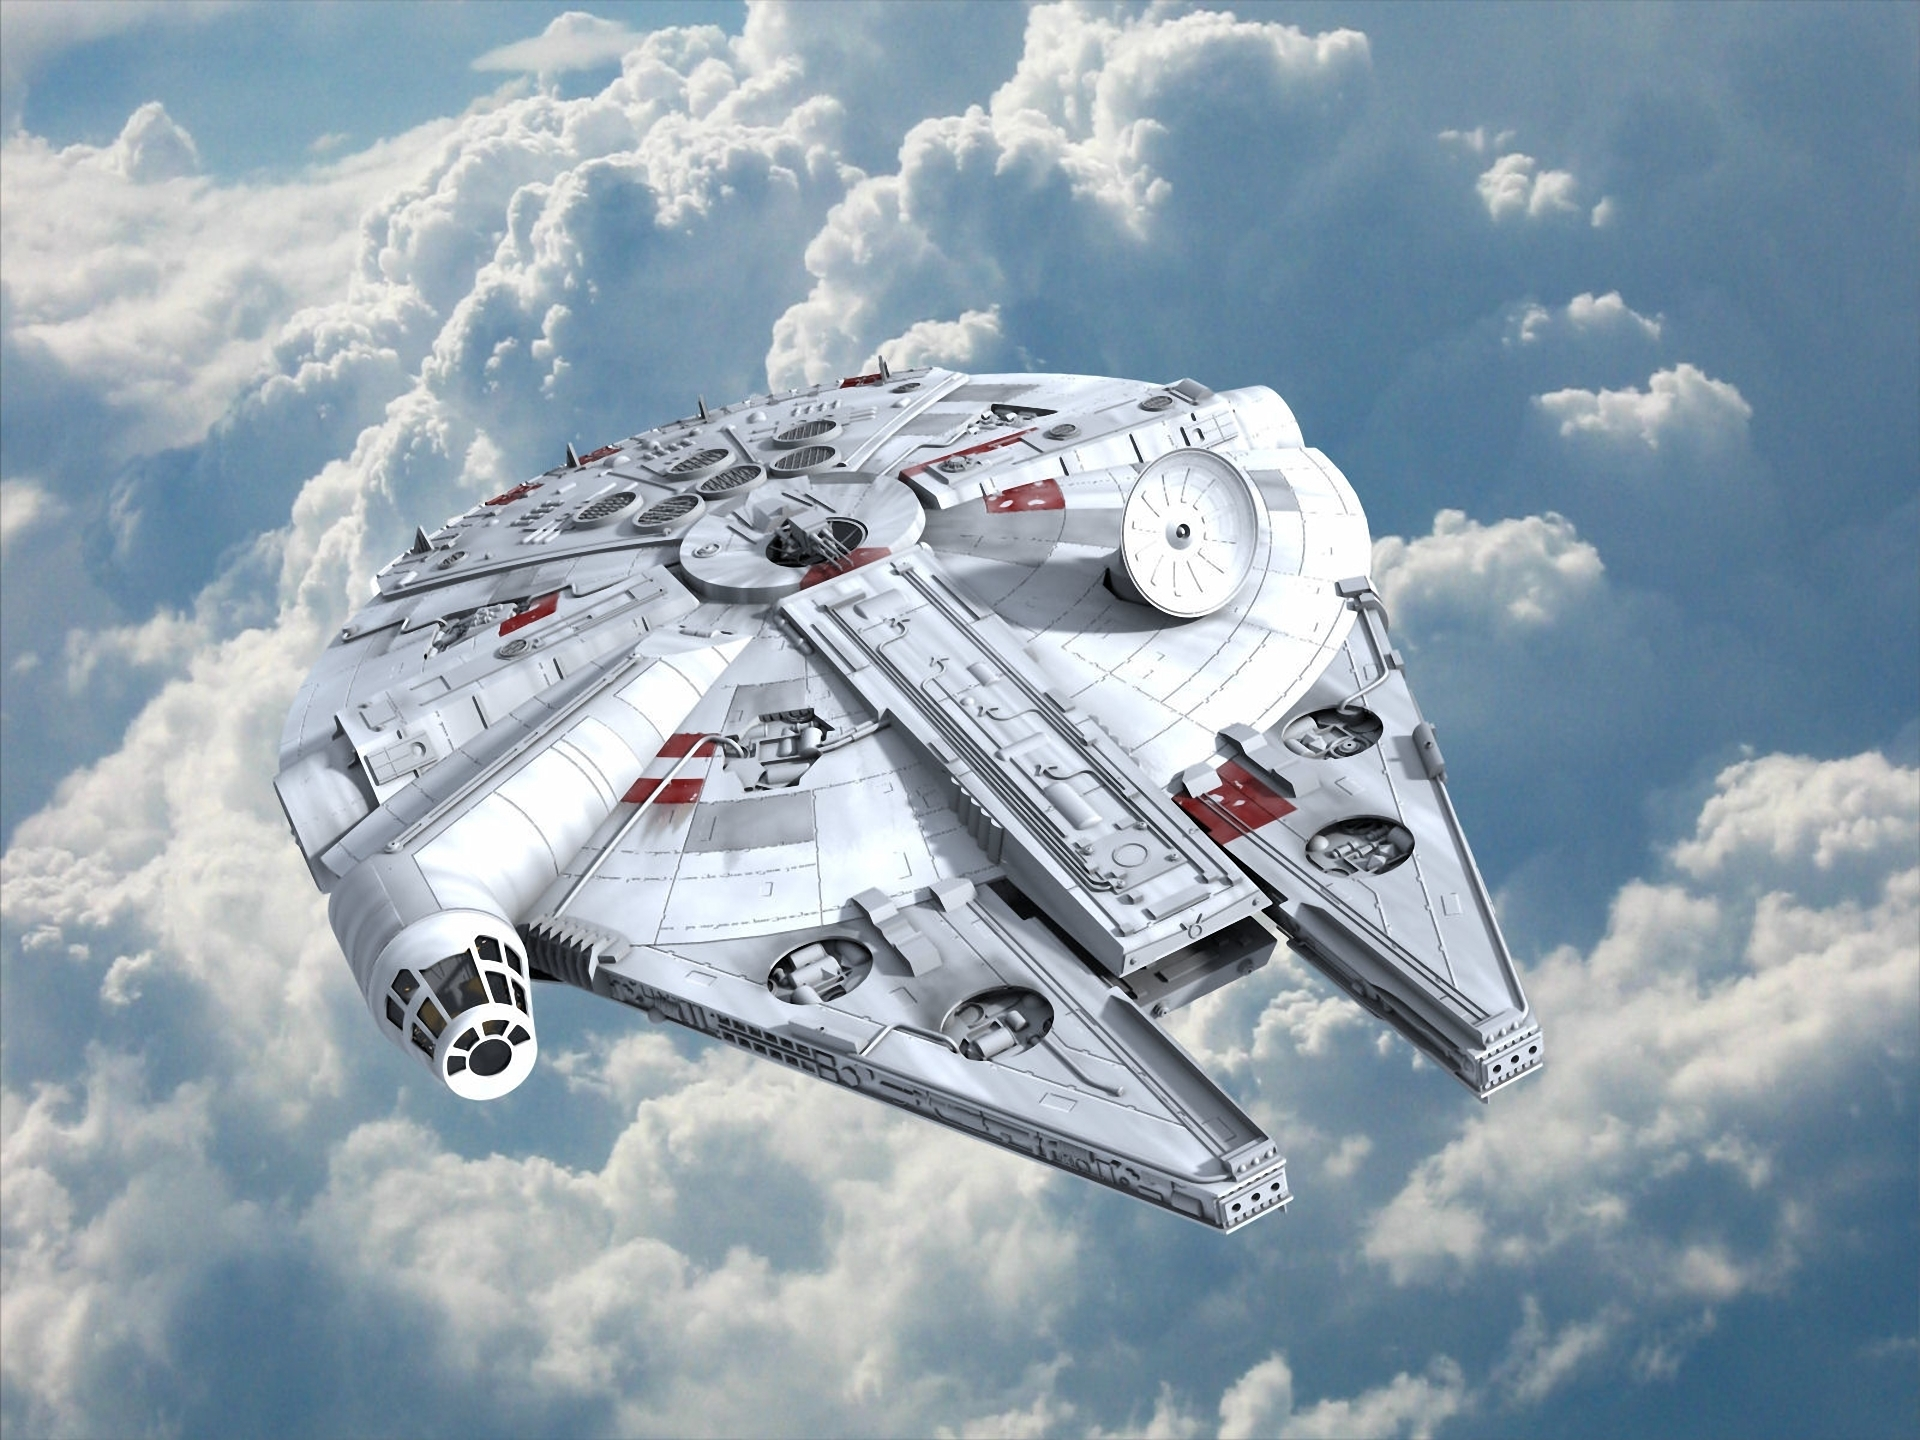 Falcon High Resolution Wallpapers: High Resolution Wallpaper Of Star Wars Millenium Falcon